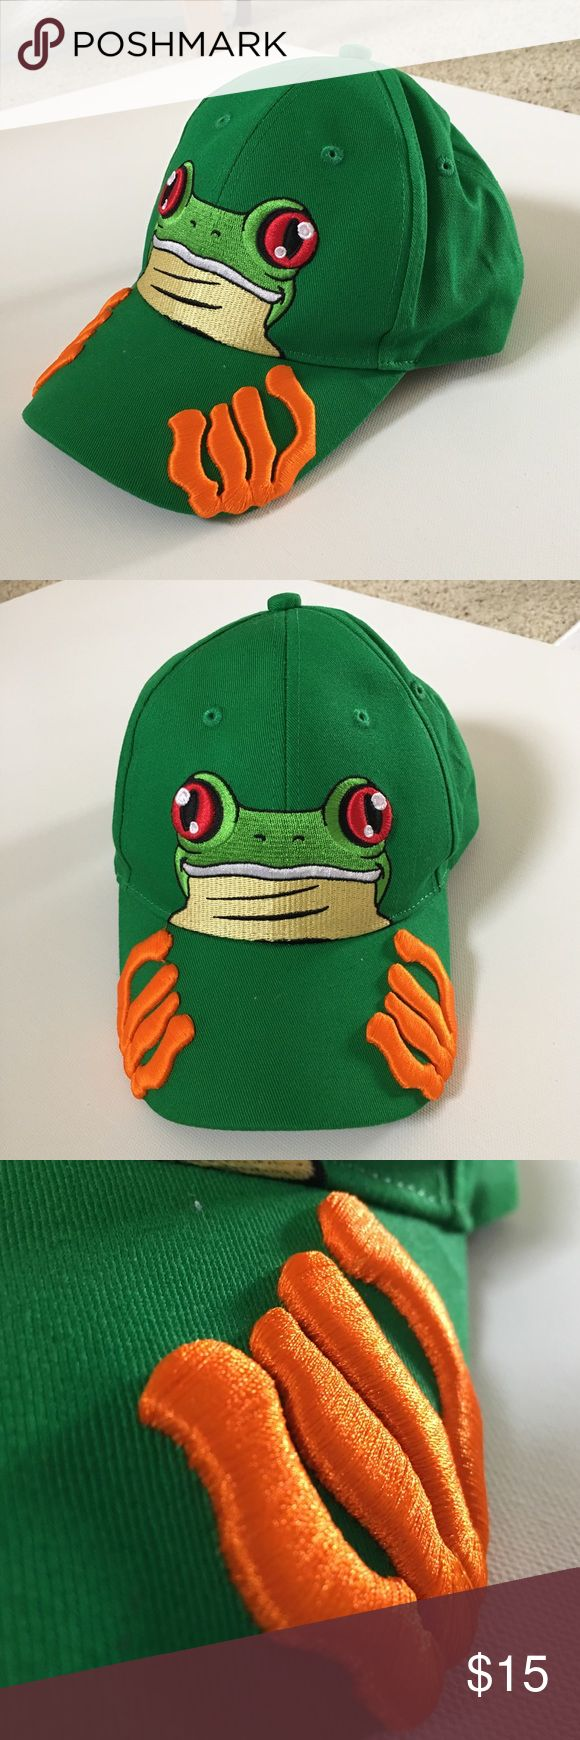 """Tree Frog Baseball Cap Beautiful bright green baseball cap from Costa Rica with an embroidered red eyed tree frog and 3D orange webbed feet that wraps around the bill.   21"""" if the Velcro is fully covered. Can go up to 23"""" max. It's probably for a teenager or adult with a smaller head, but I was able to wear it (but still fits a bit small) after letting more Velcro out.  Never worn! Accessories Hats"""